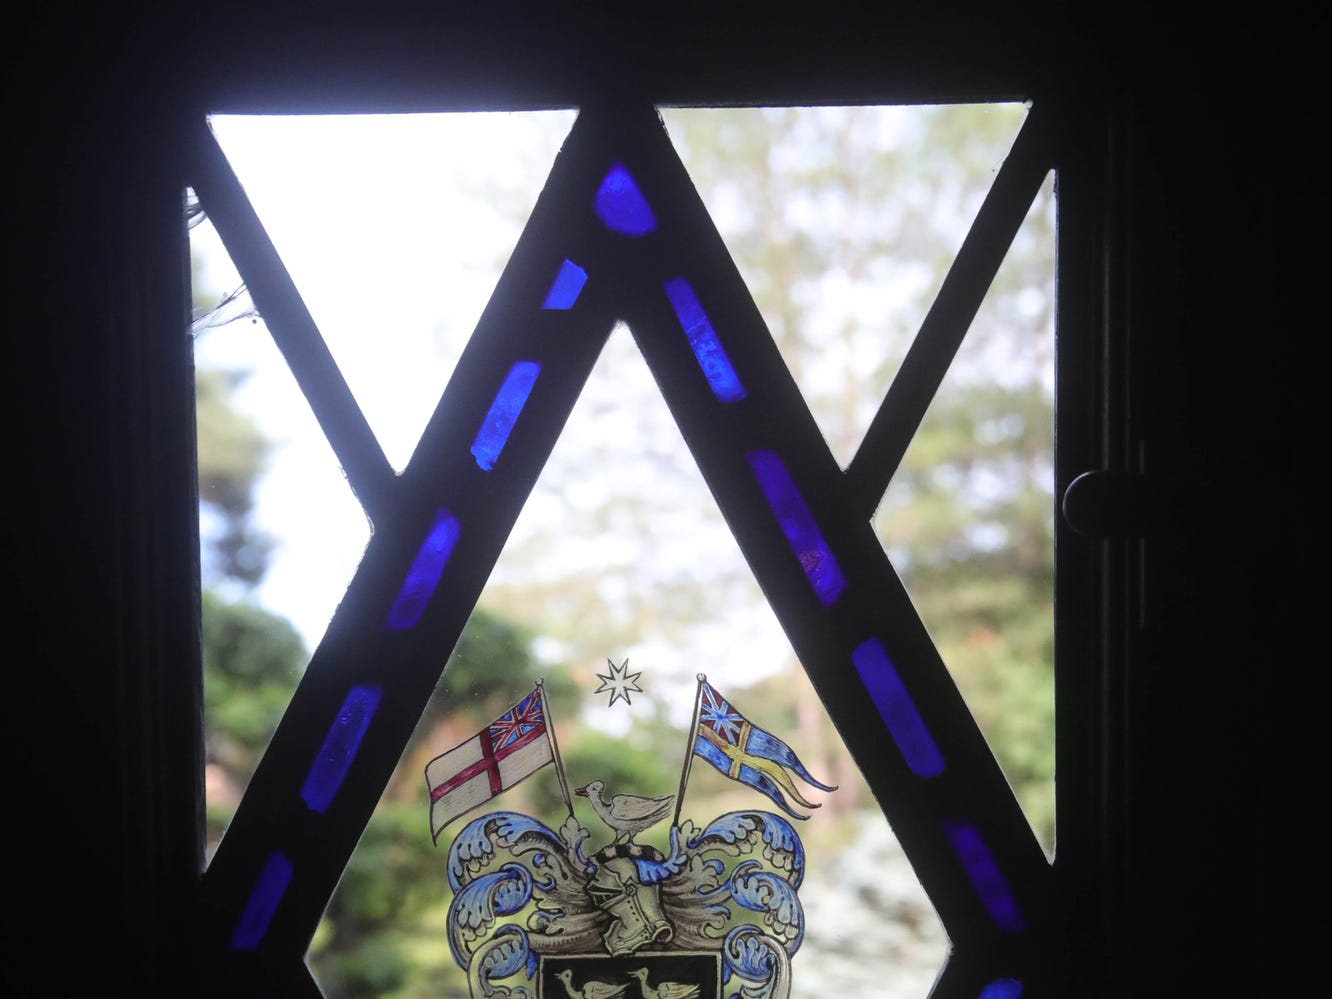 Personalized stained glass through the house include this family crest with symbols  from the Union Jack and Swedish flags.